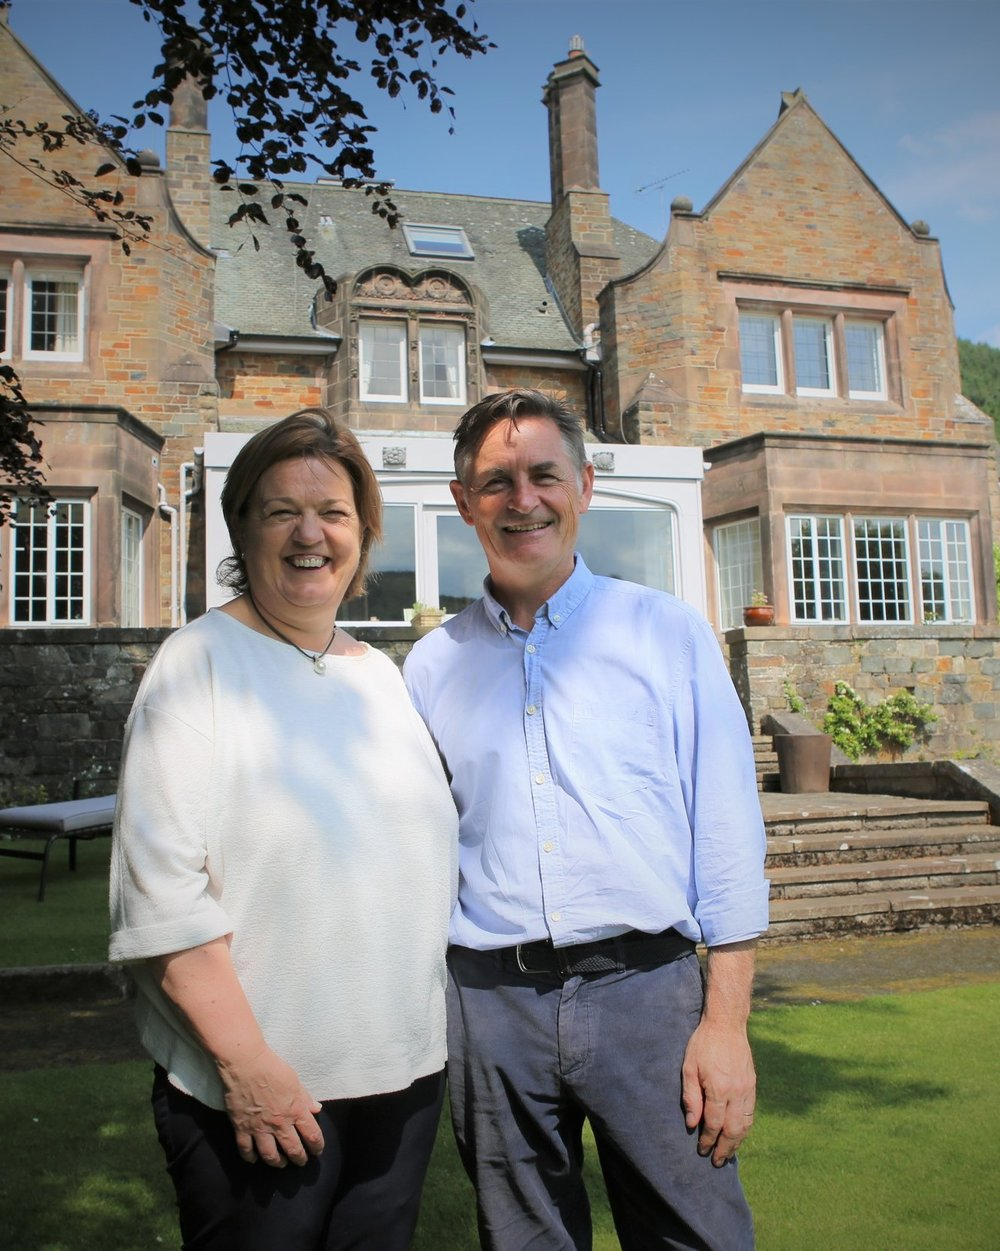 The Owners - We are John and Sylvia. Windlestraw is our home and our dream and we invite you to share.